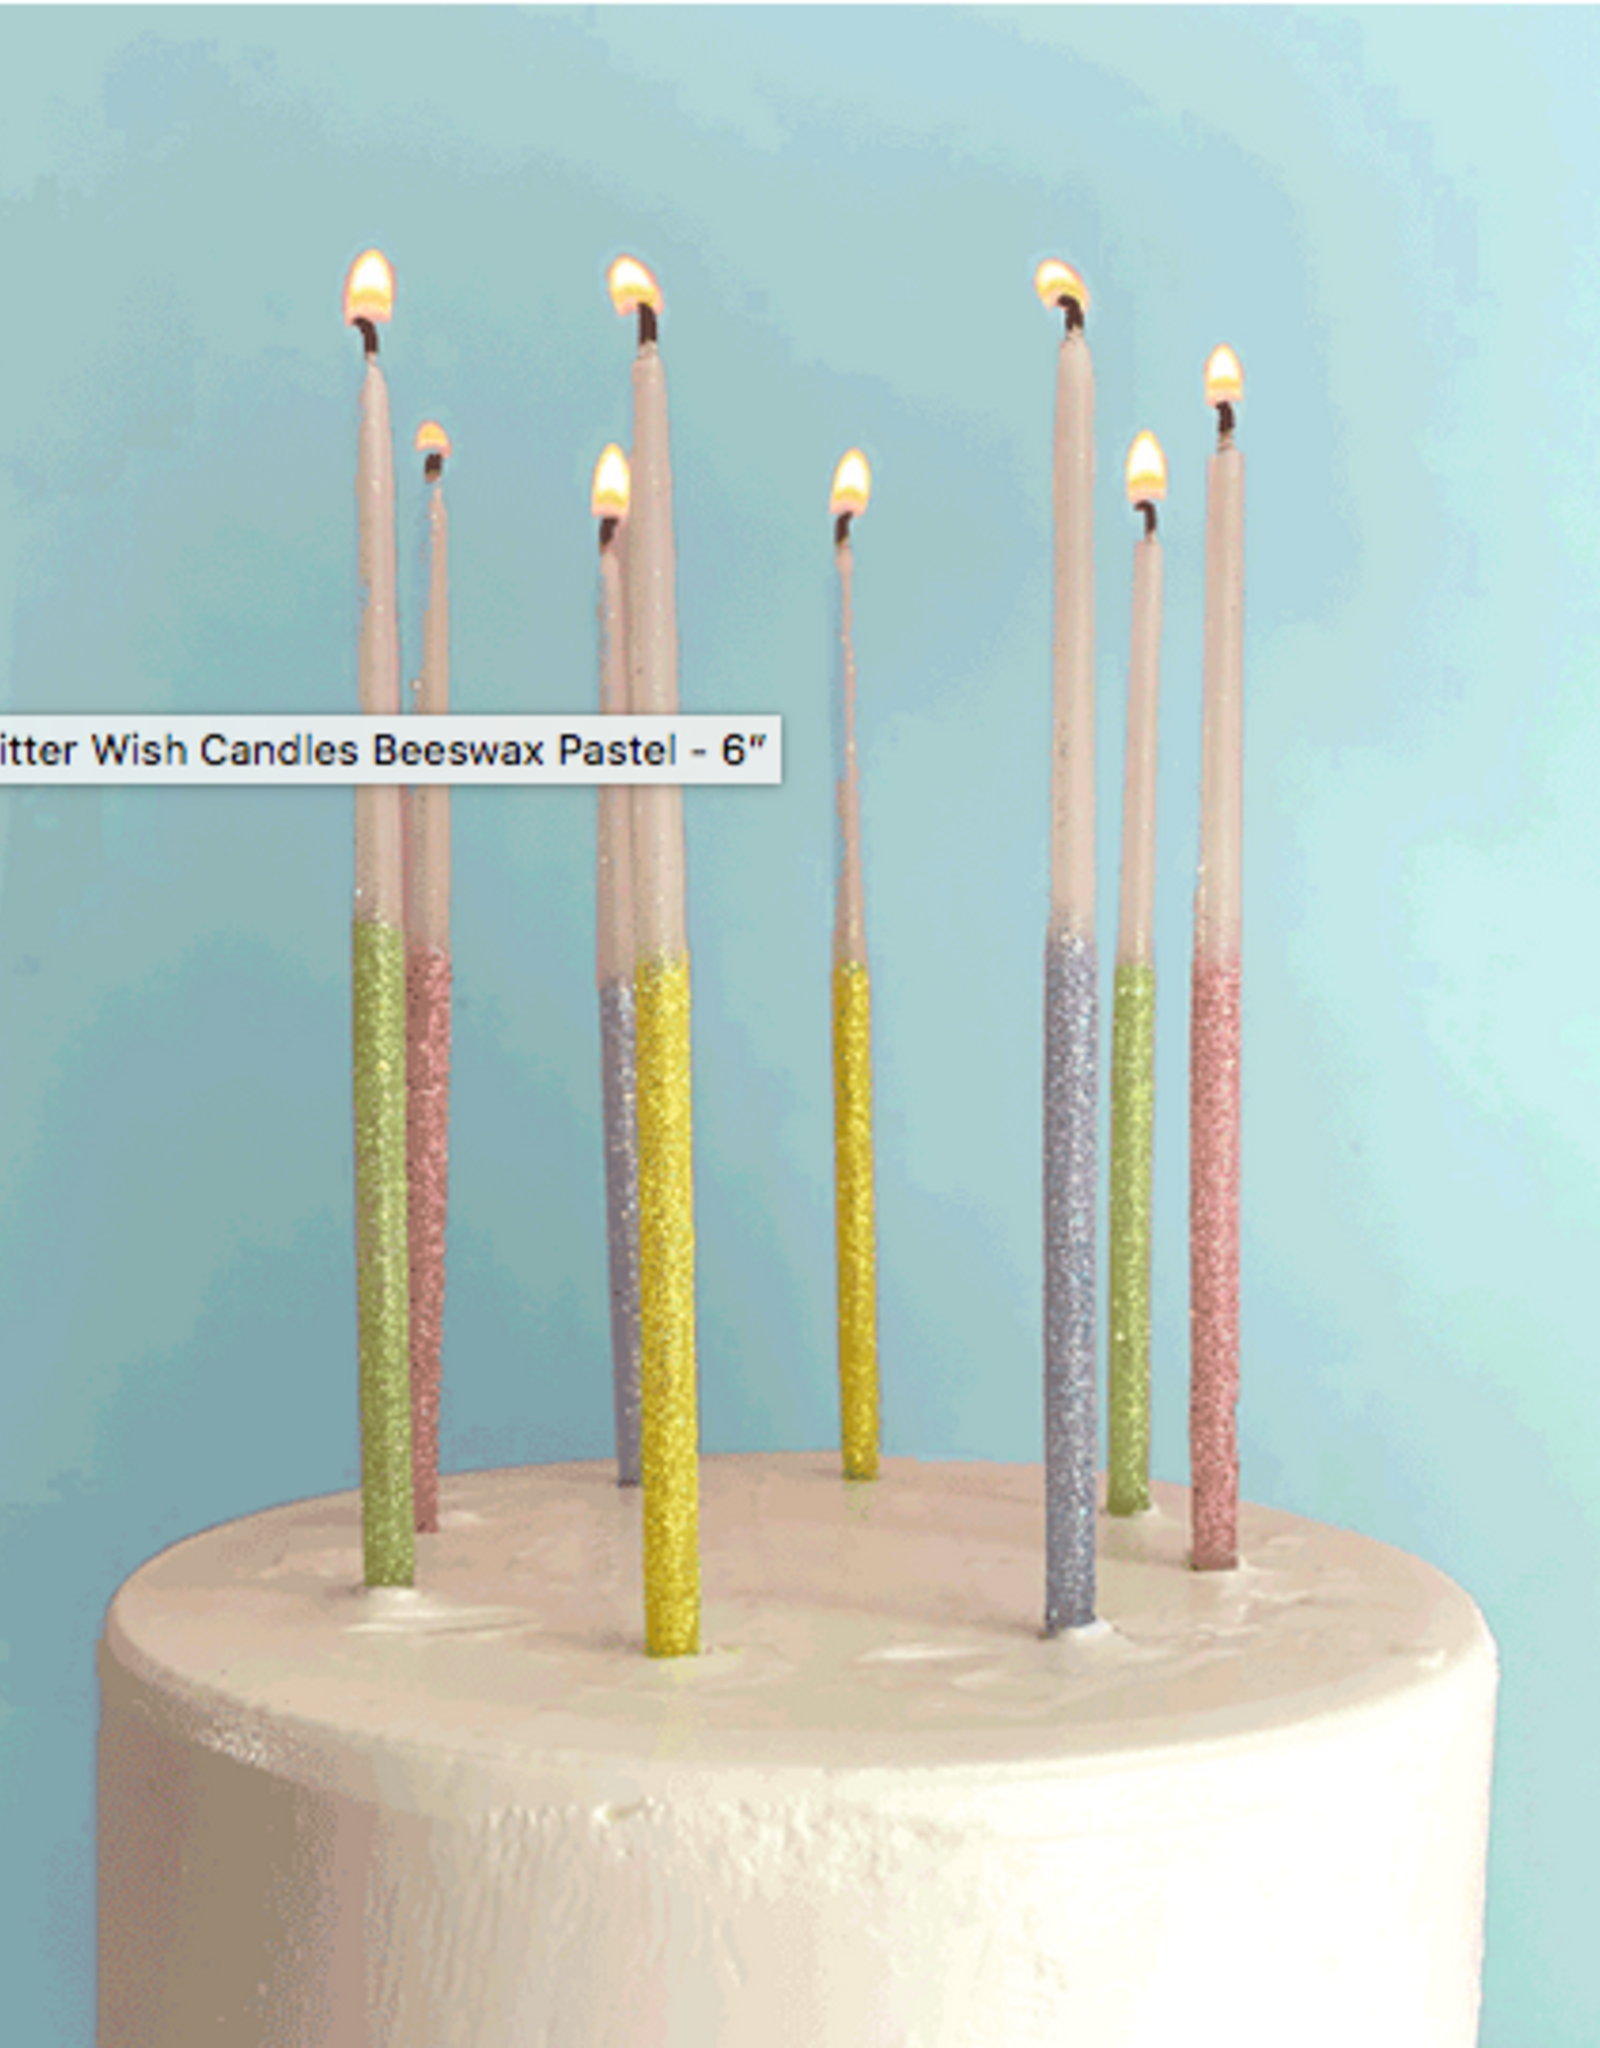 TOPS Malibu Glitter Wish Candles Beeswax Pastel